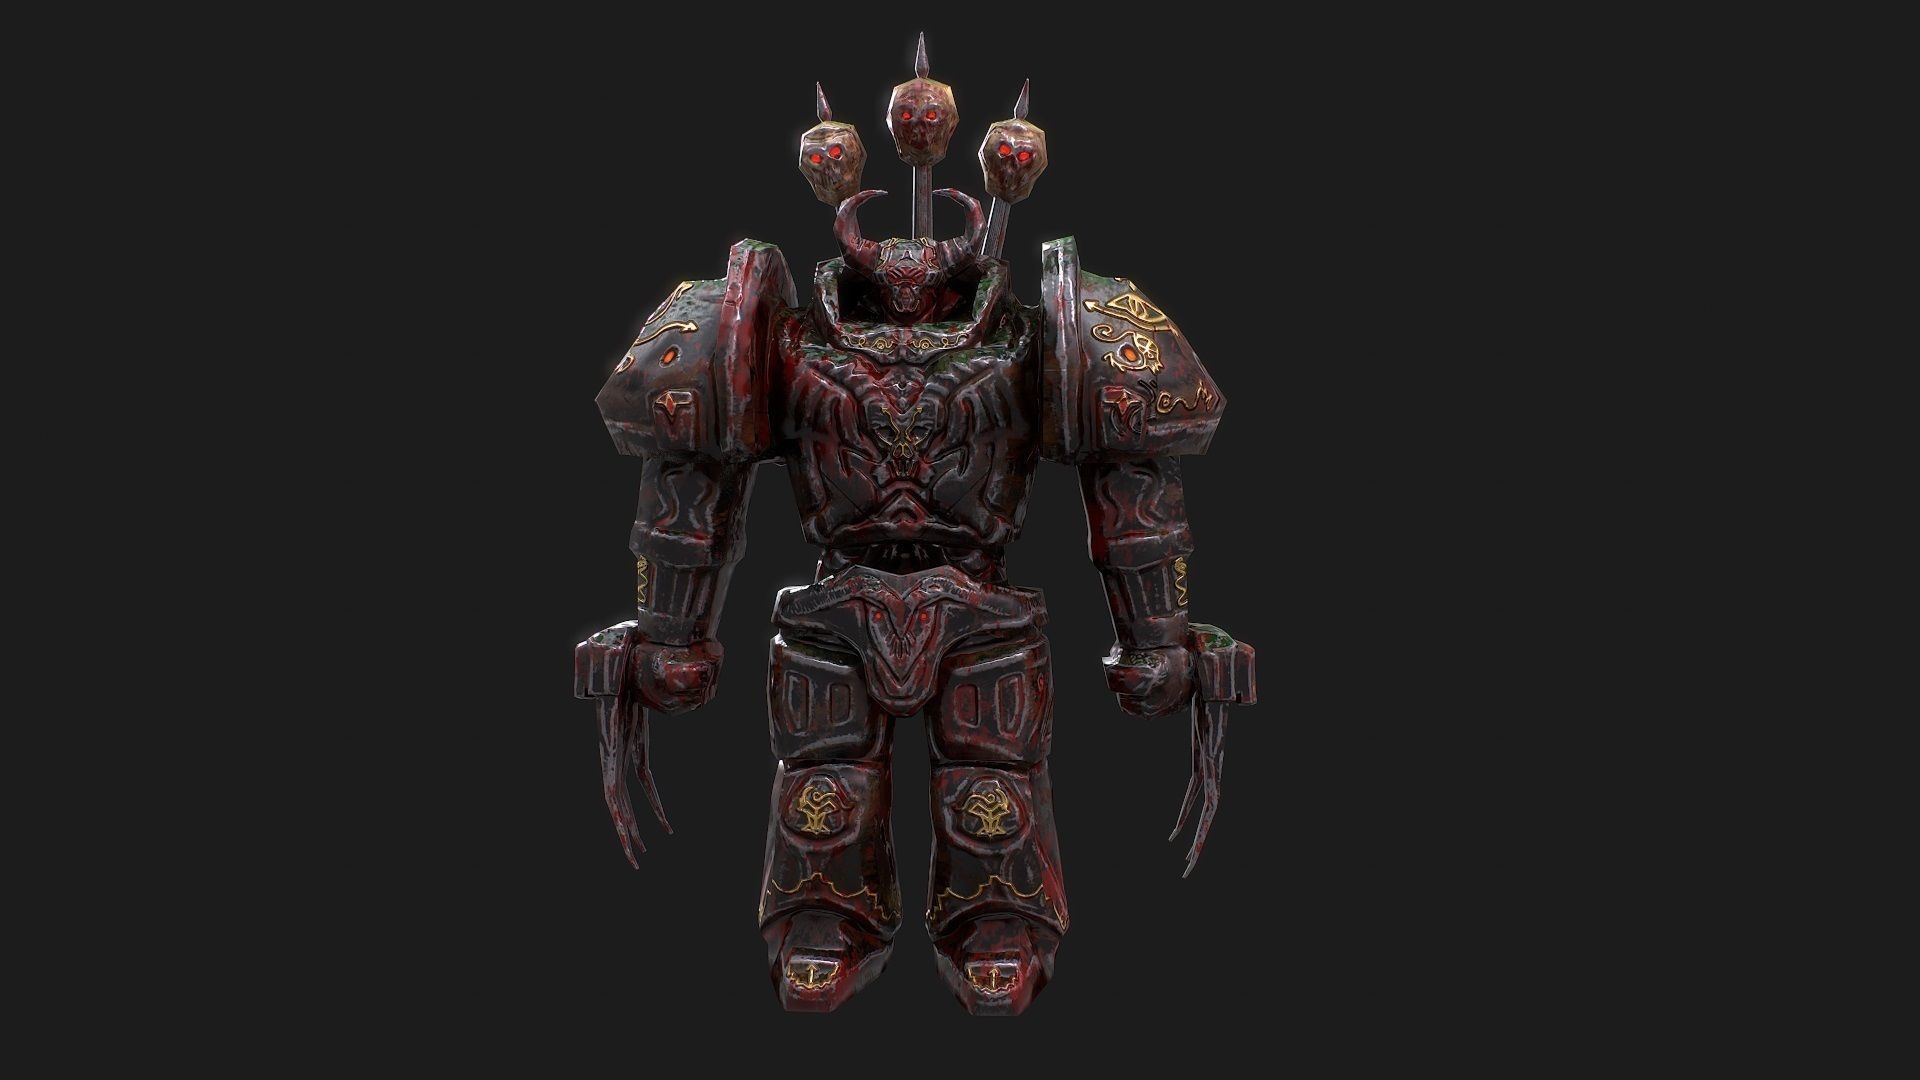 3d low poly model of Chaos Warrior character | 3D model